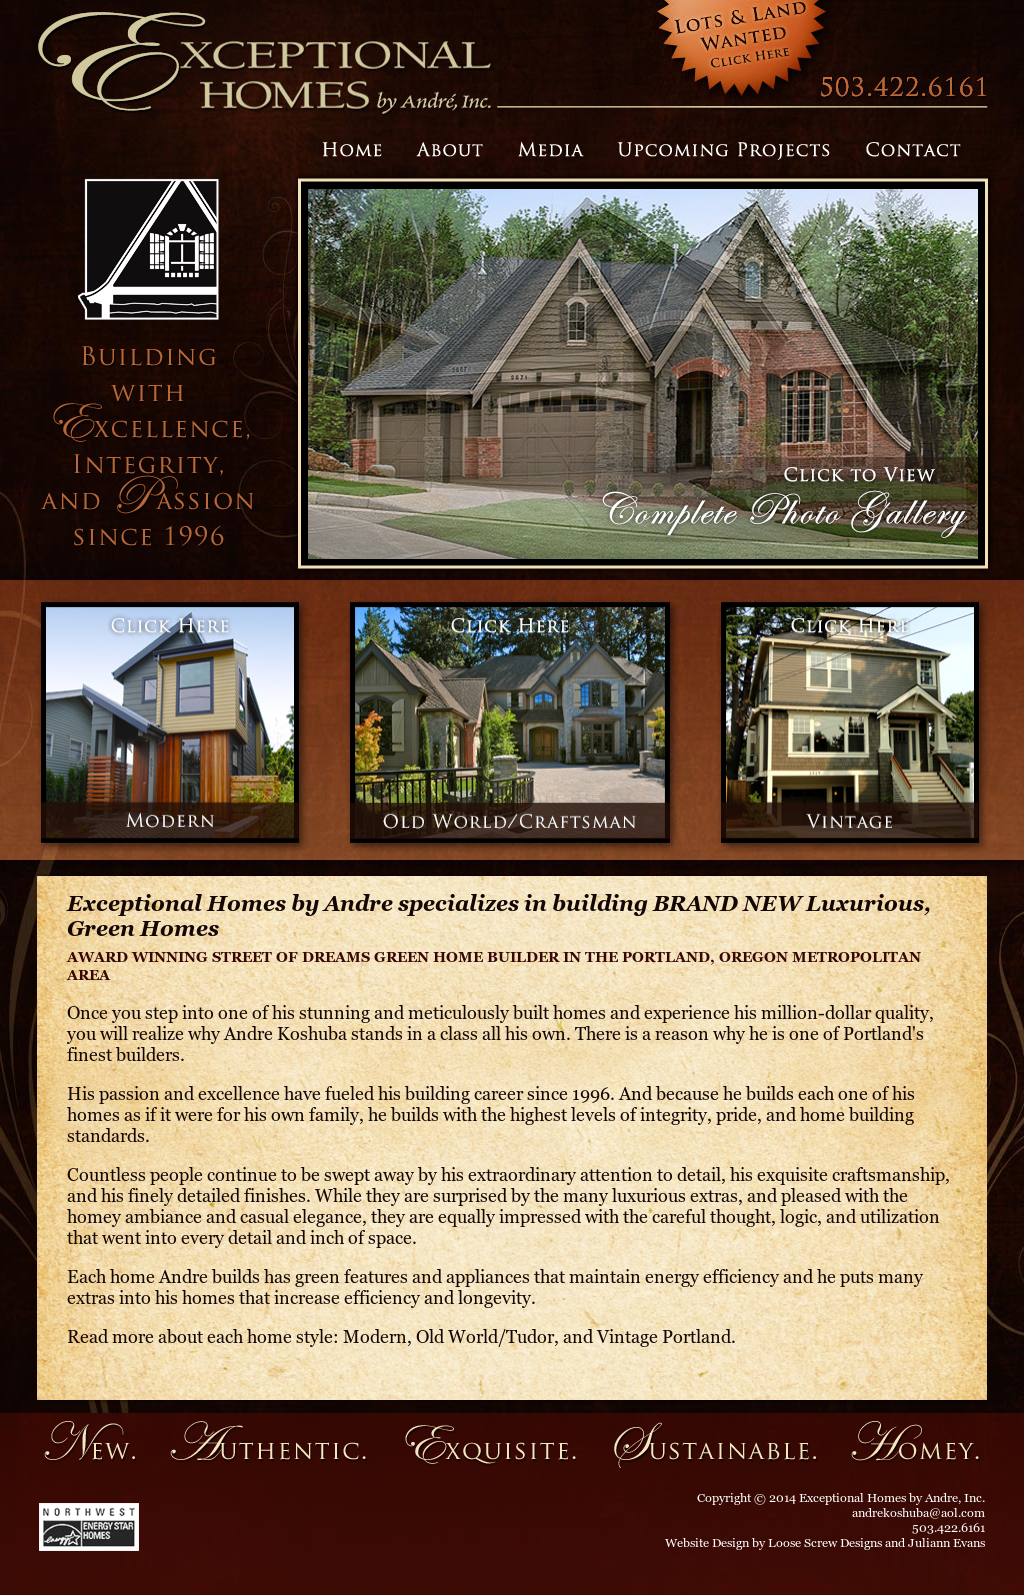 Exceptional Homes By Andre Competitors, Revenue and